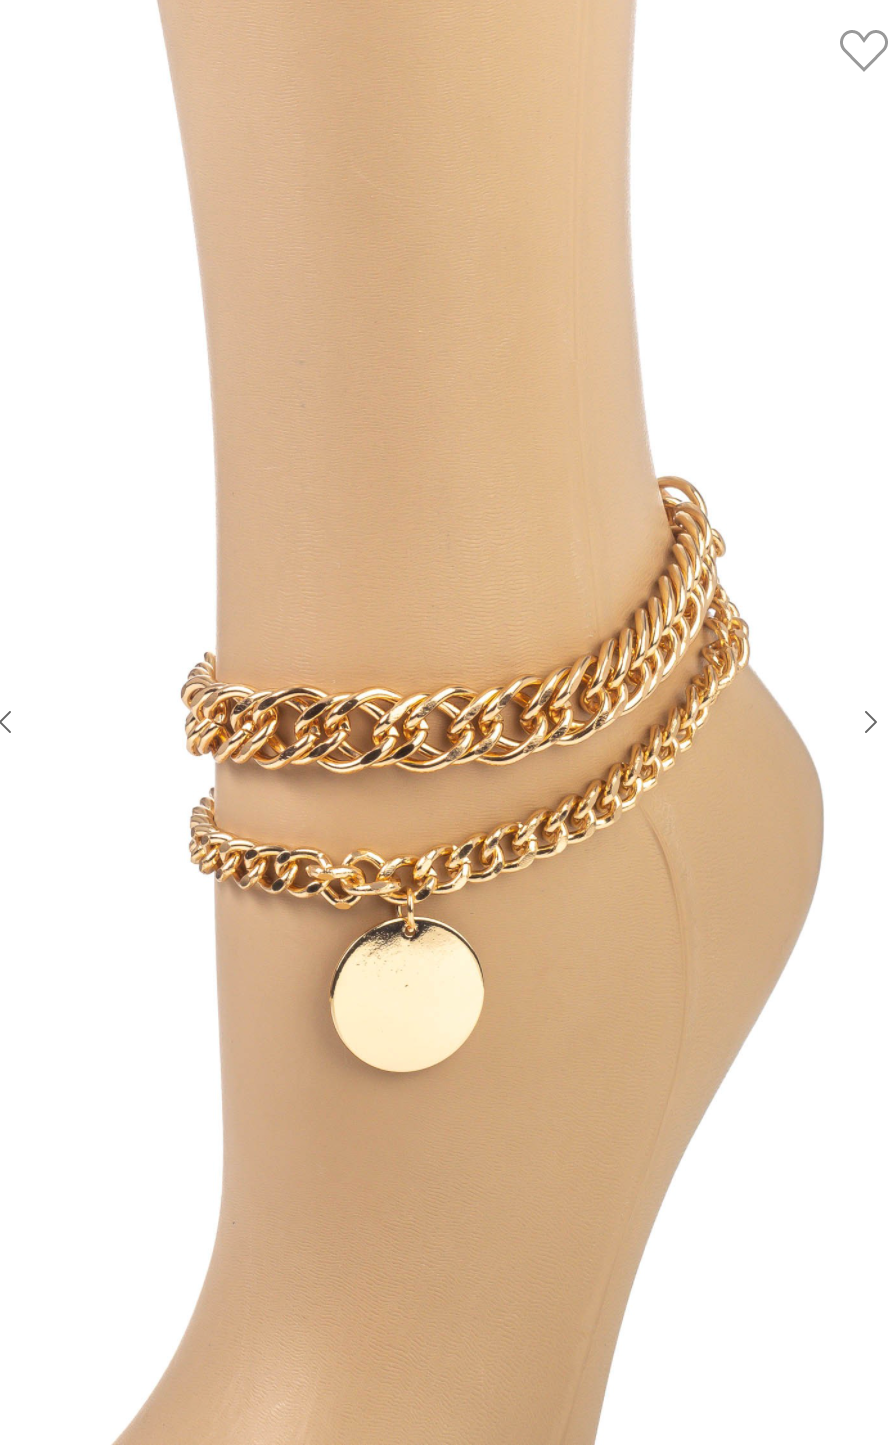 Coin Charm Layered Chain Anklet